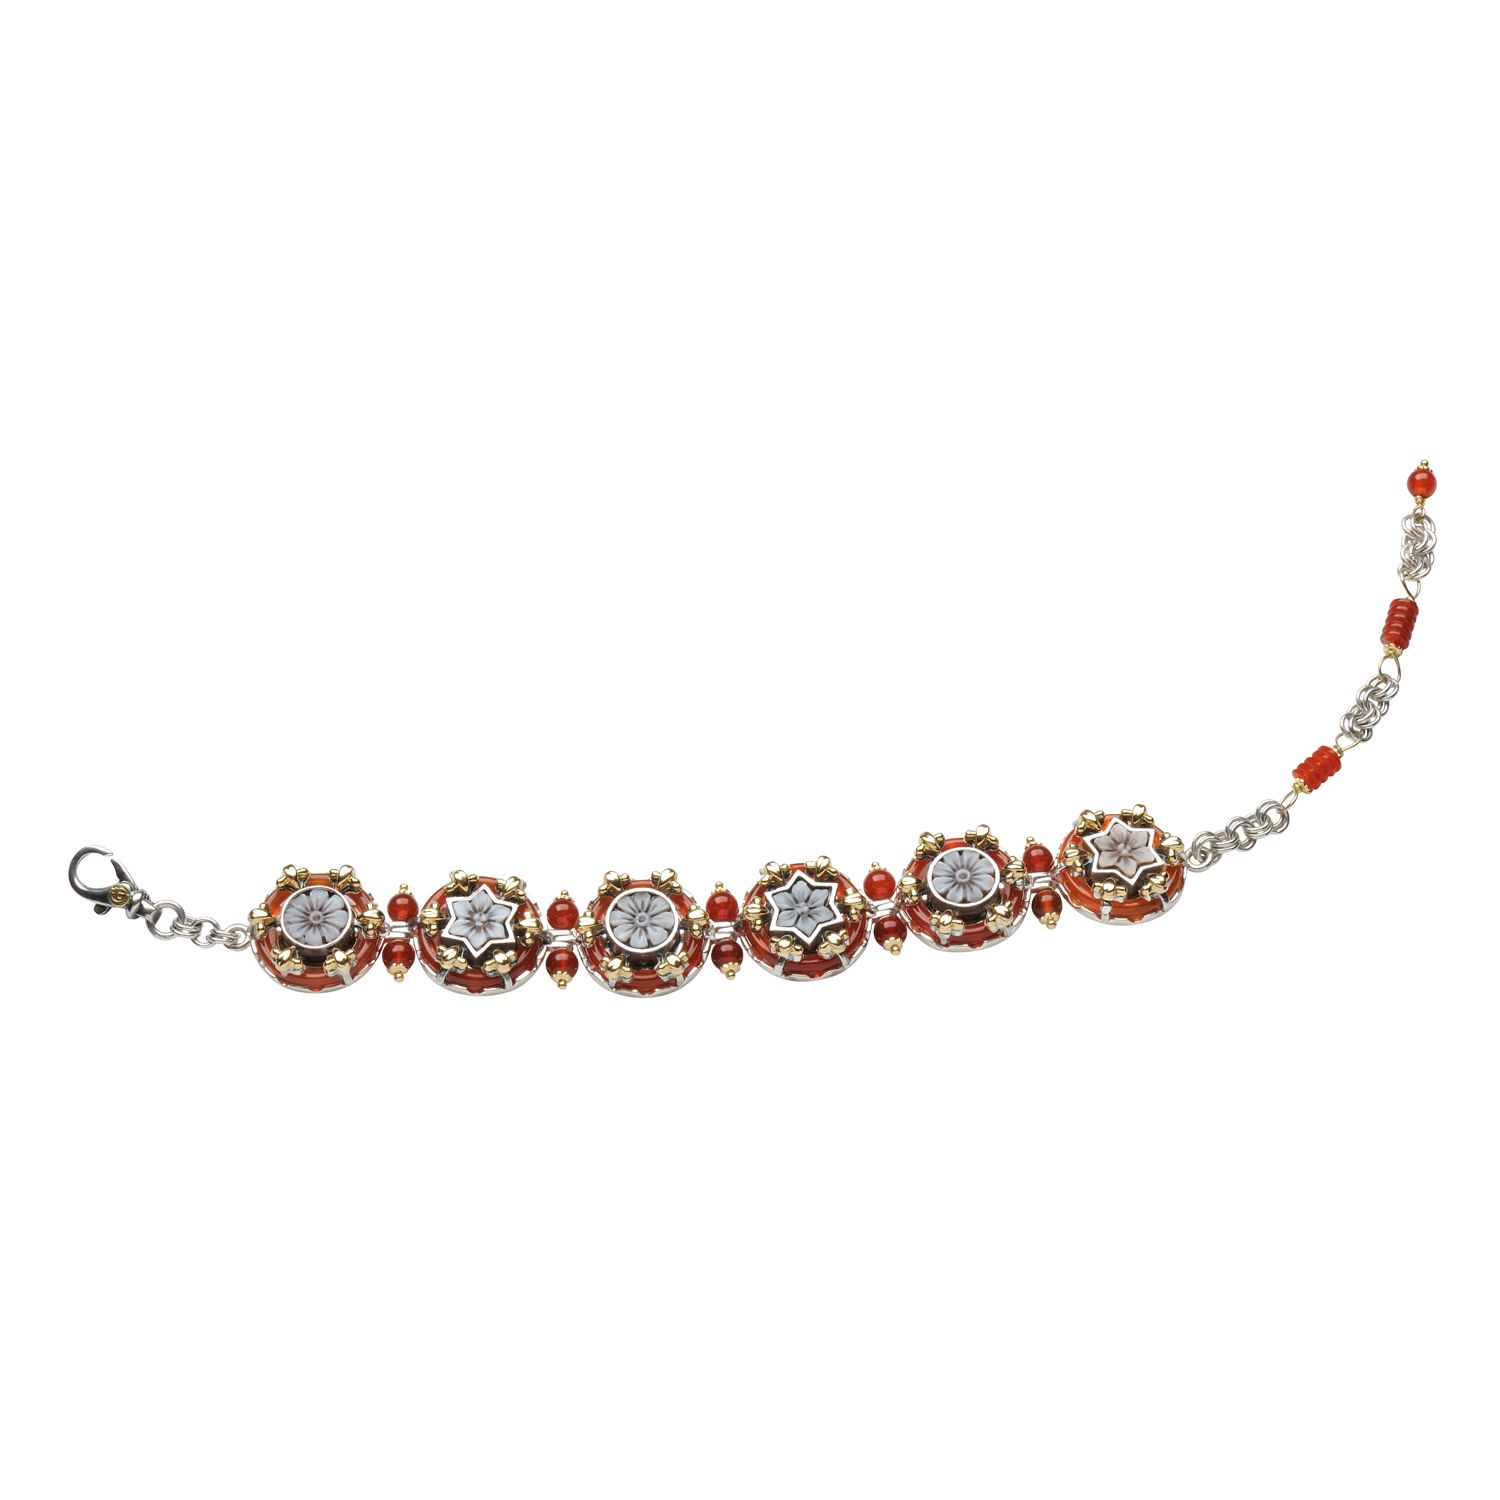 Bracelet with Cameos and Agates (18067)